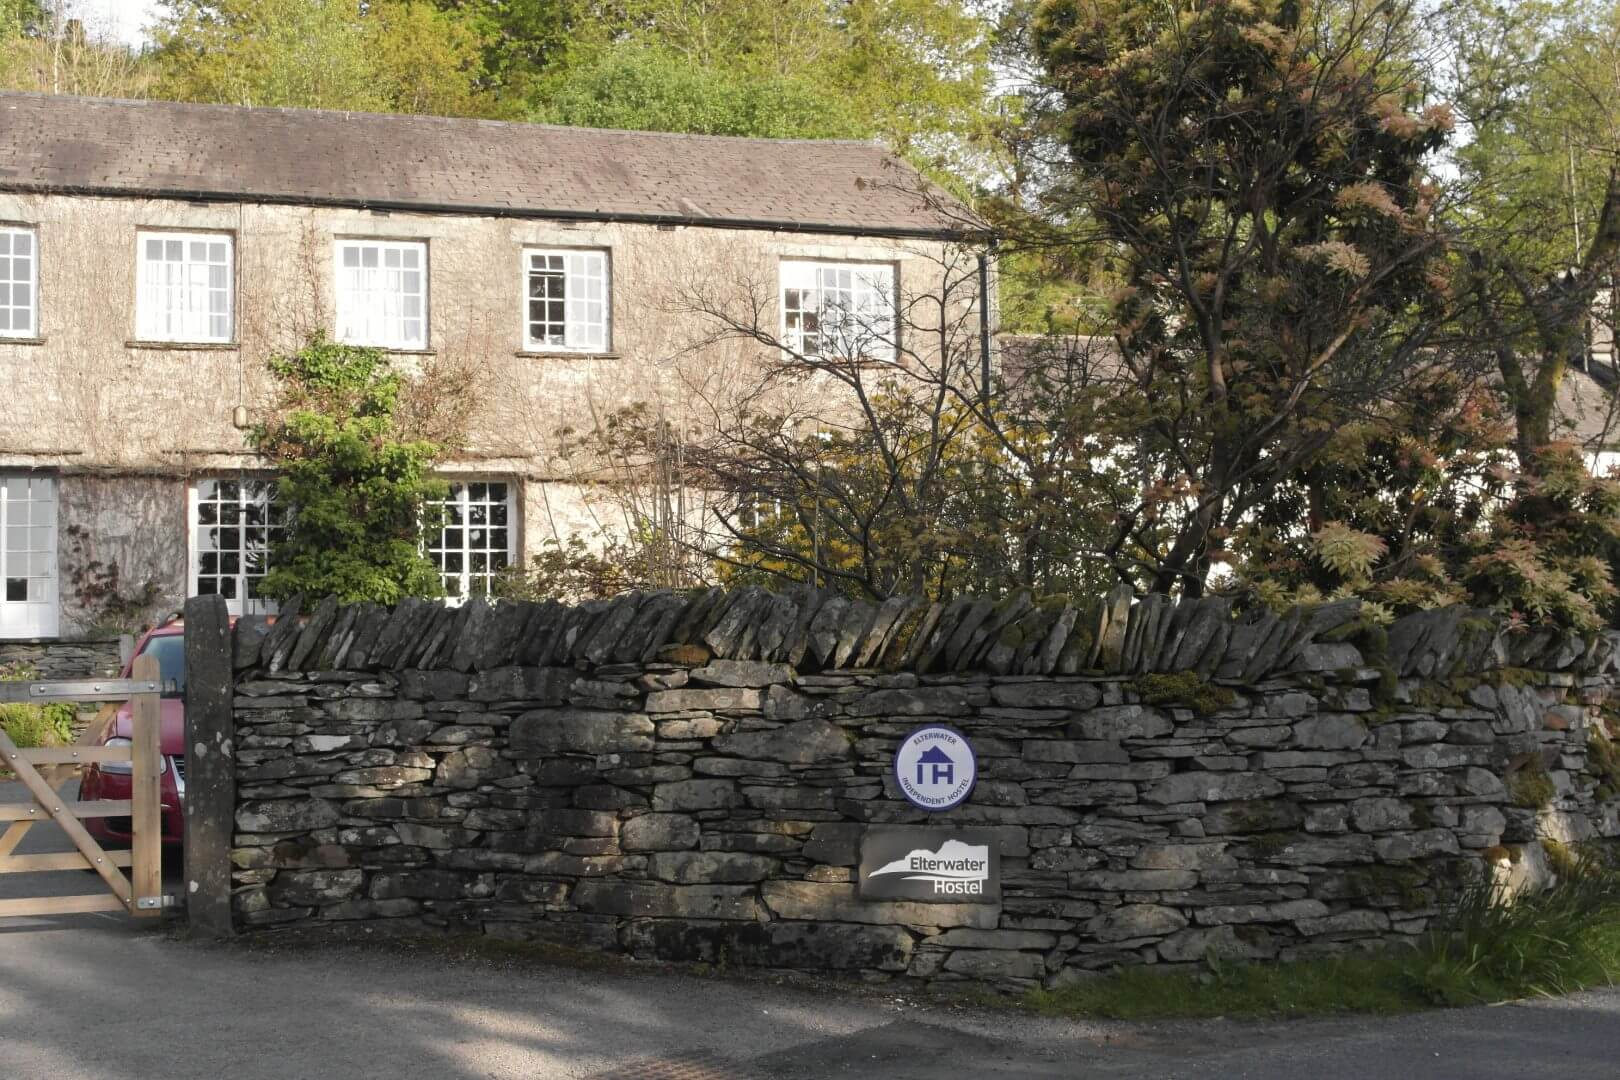 Elterwater Independent Hostel